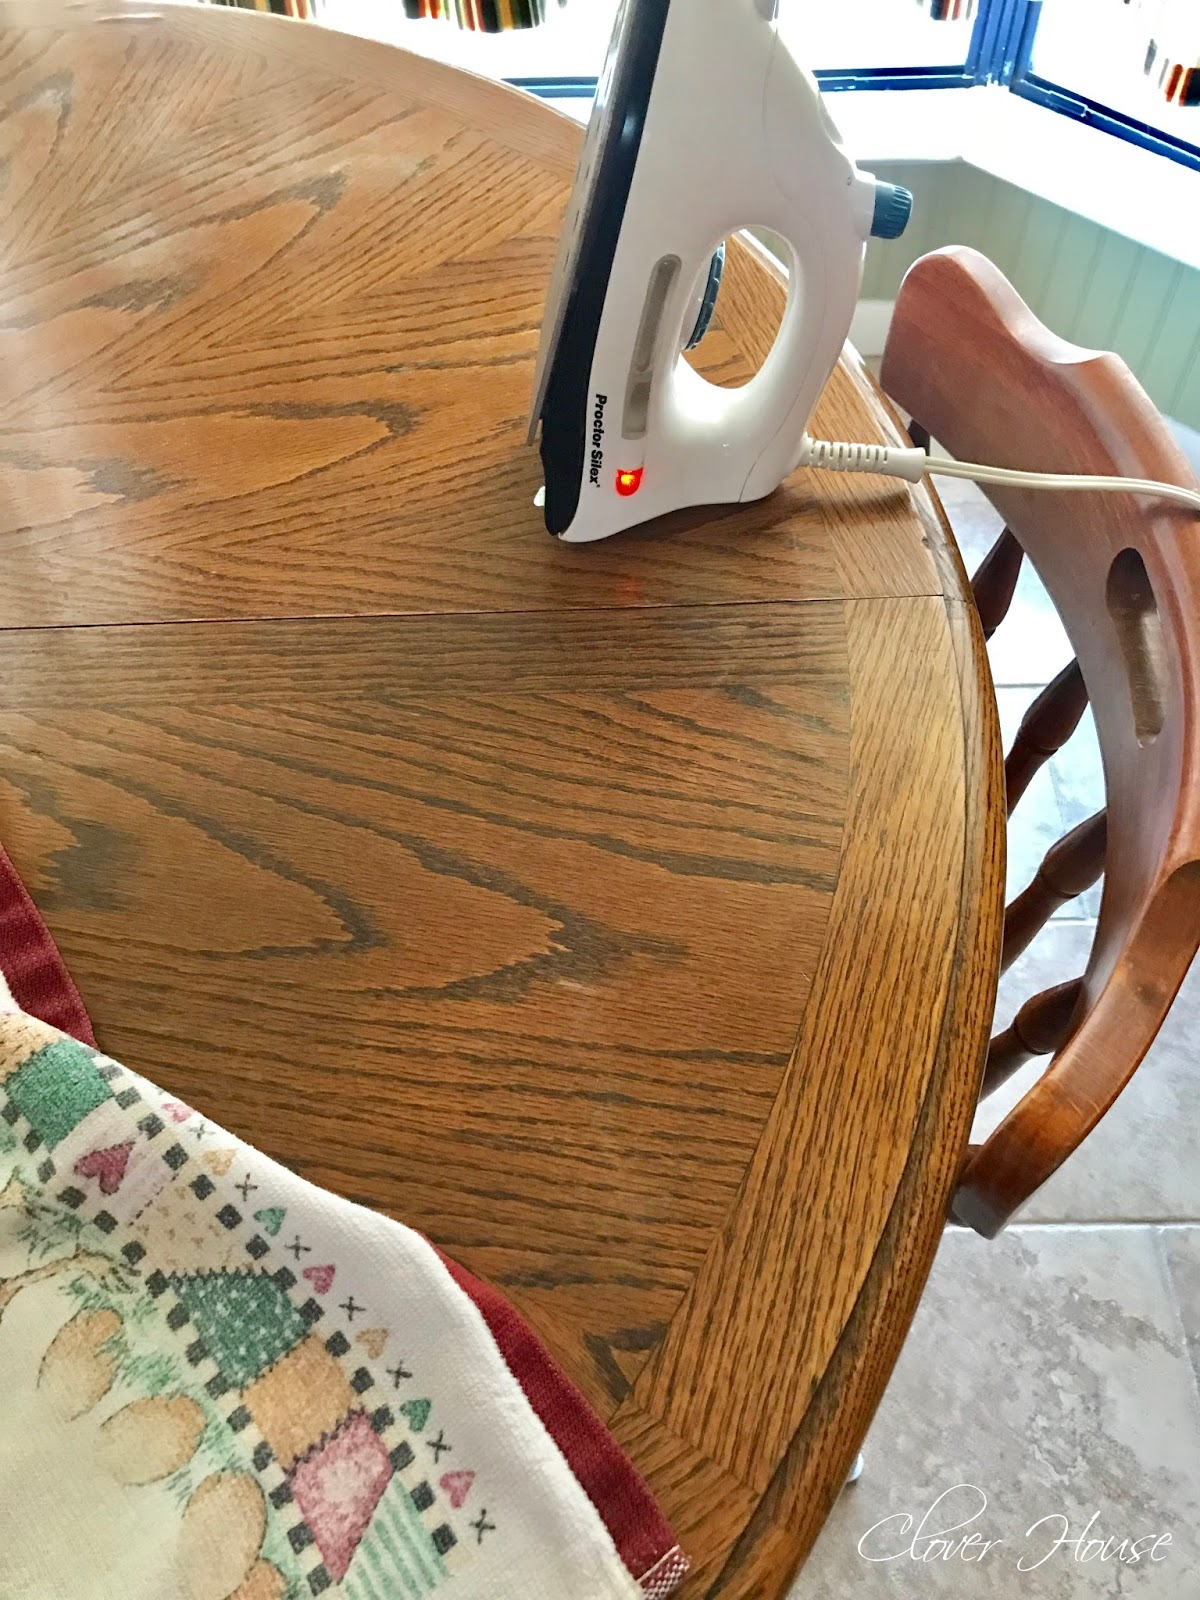 Clover House Removing White Heat Marks From Your Table Top - How To Remove Old White Heat Stains From Tablecloths